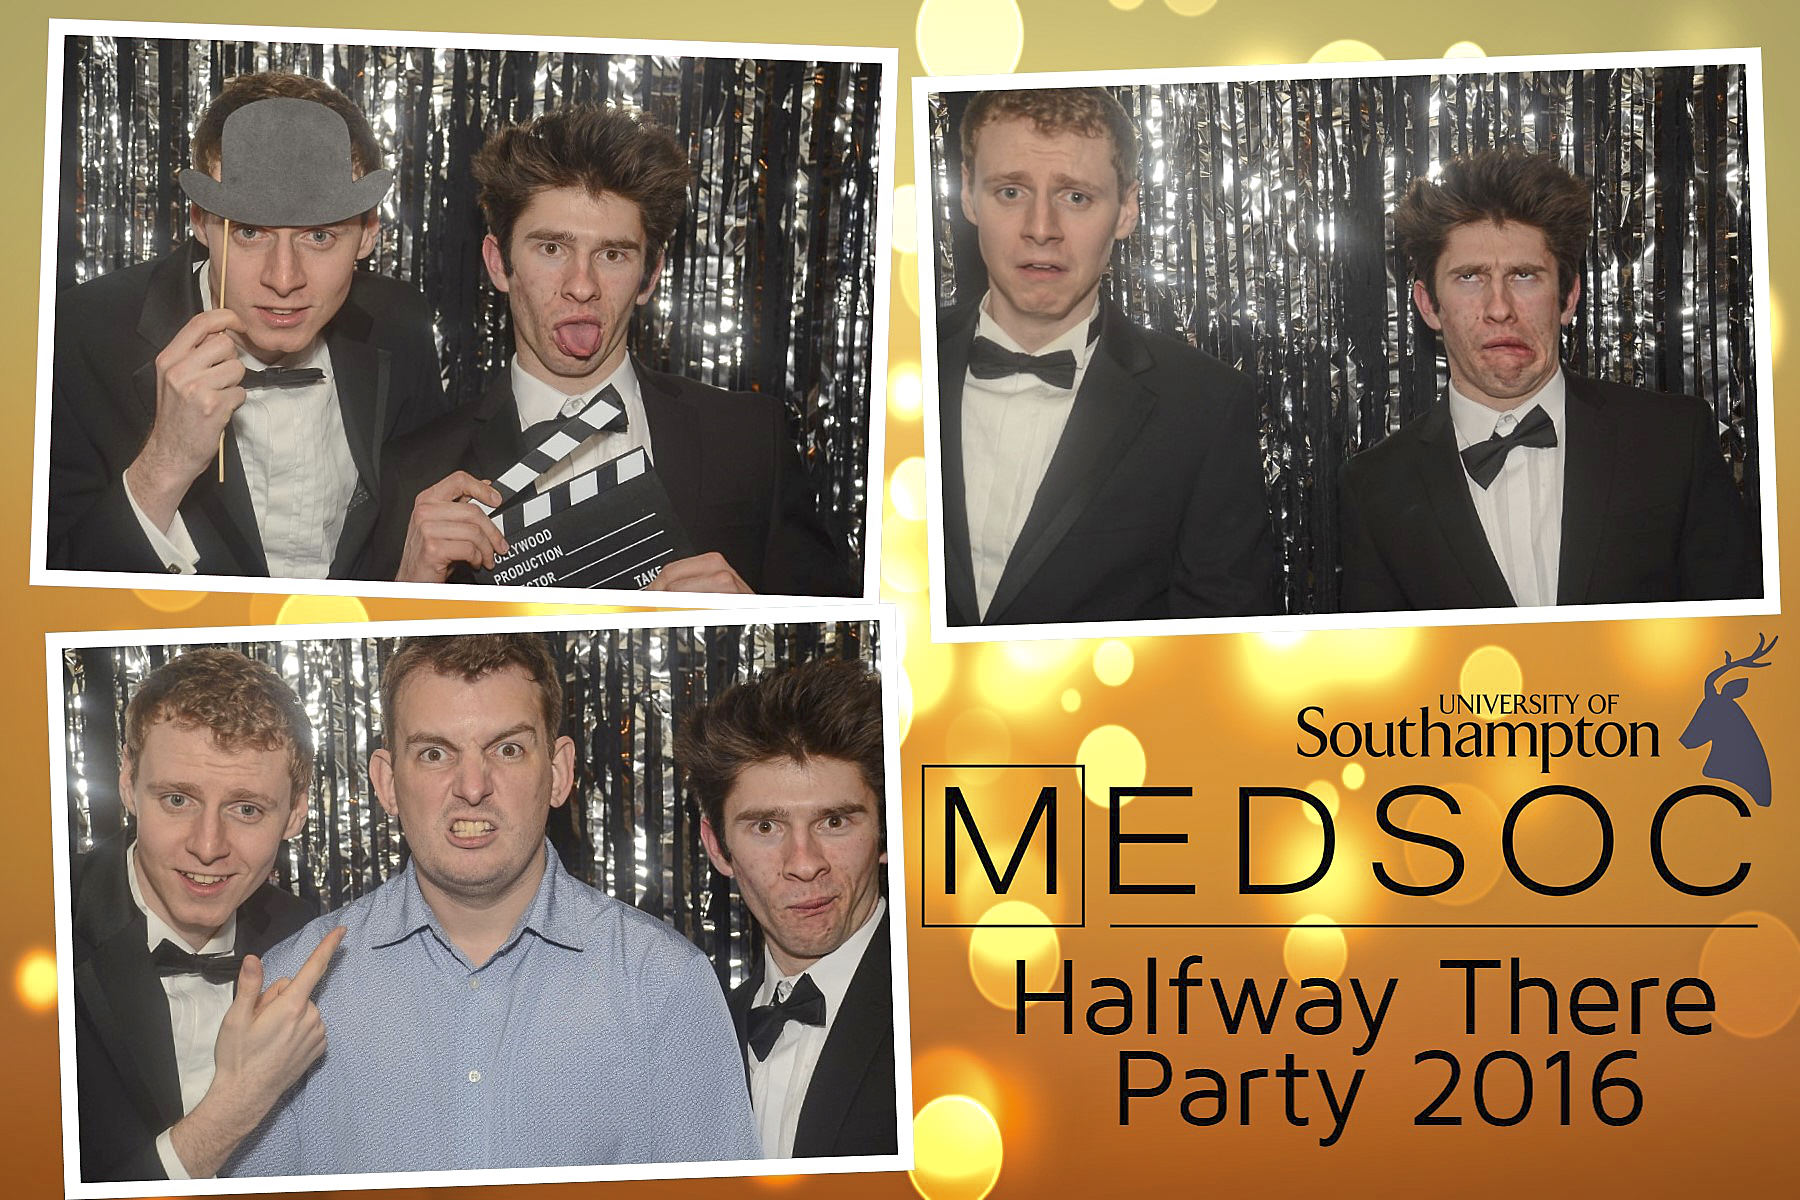 MedSoc Halfway There Party 2016 DS224208.jpg